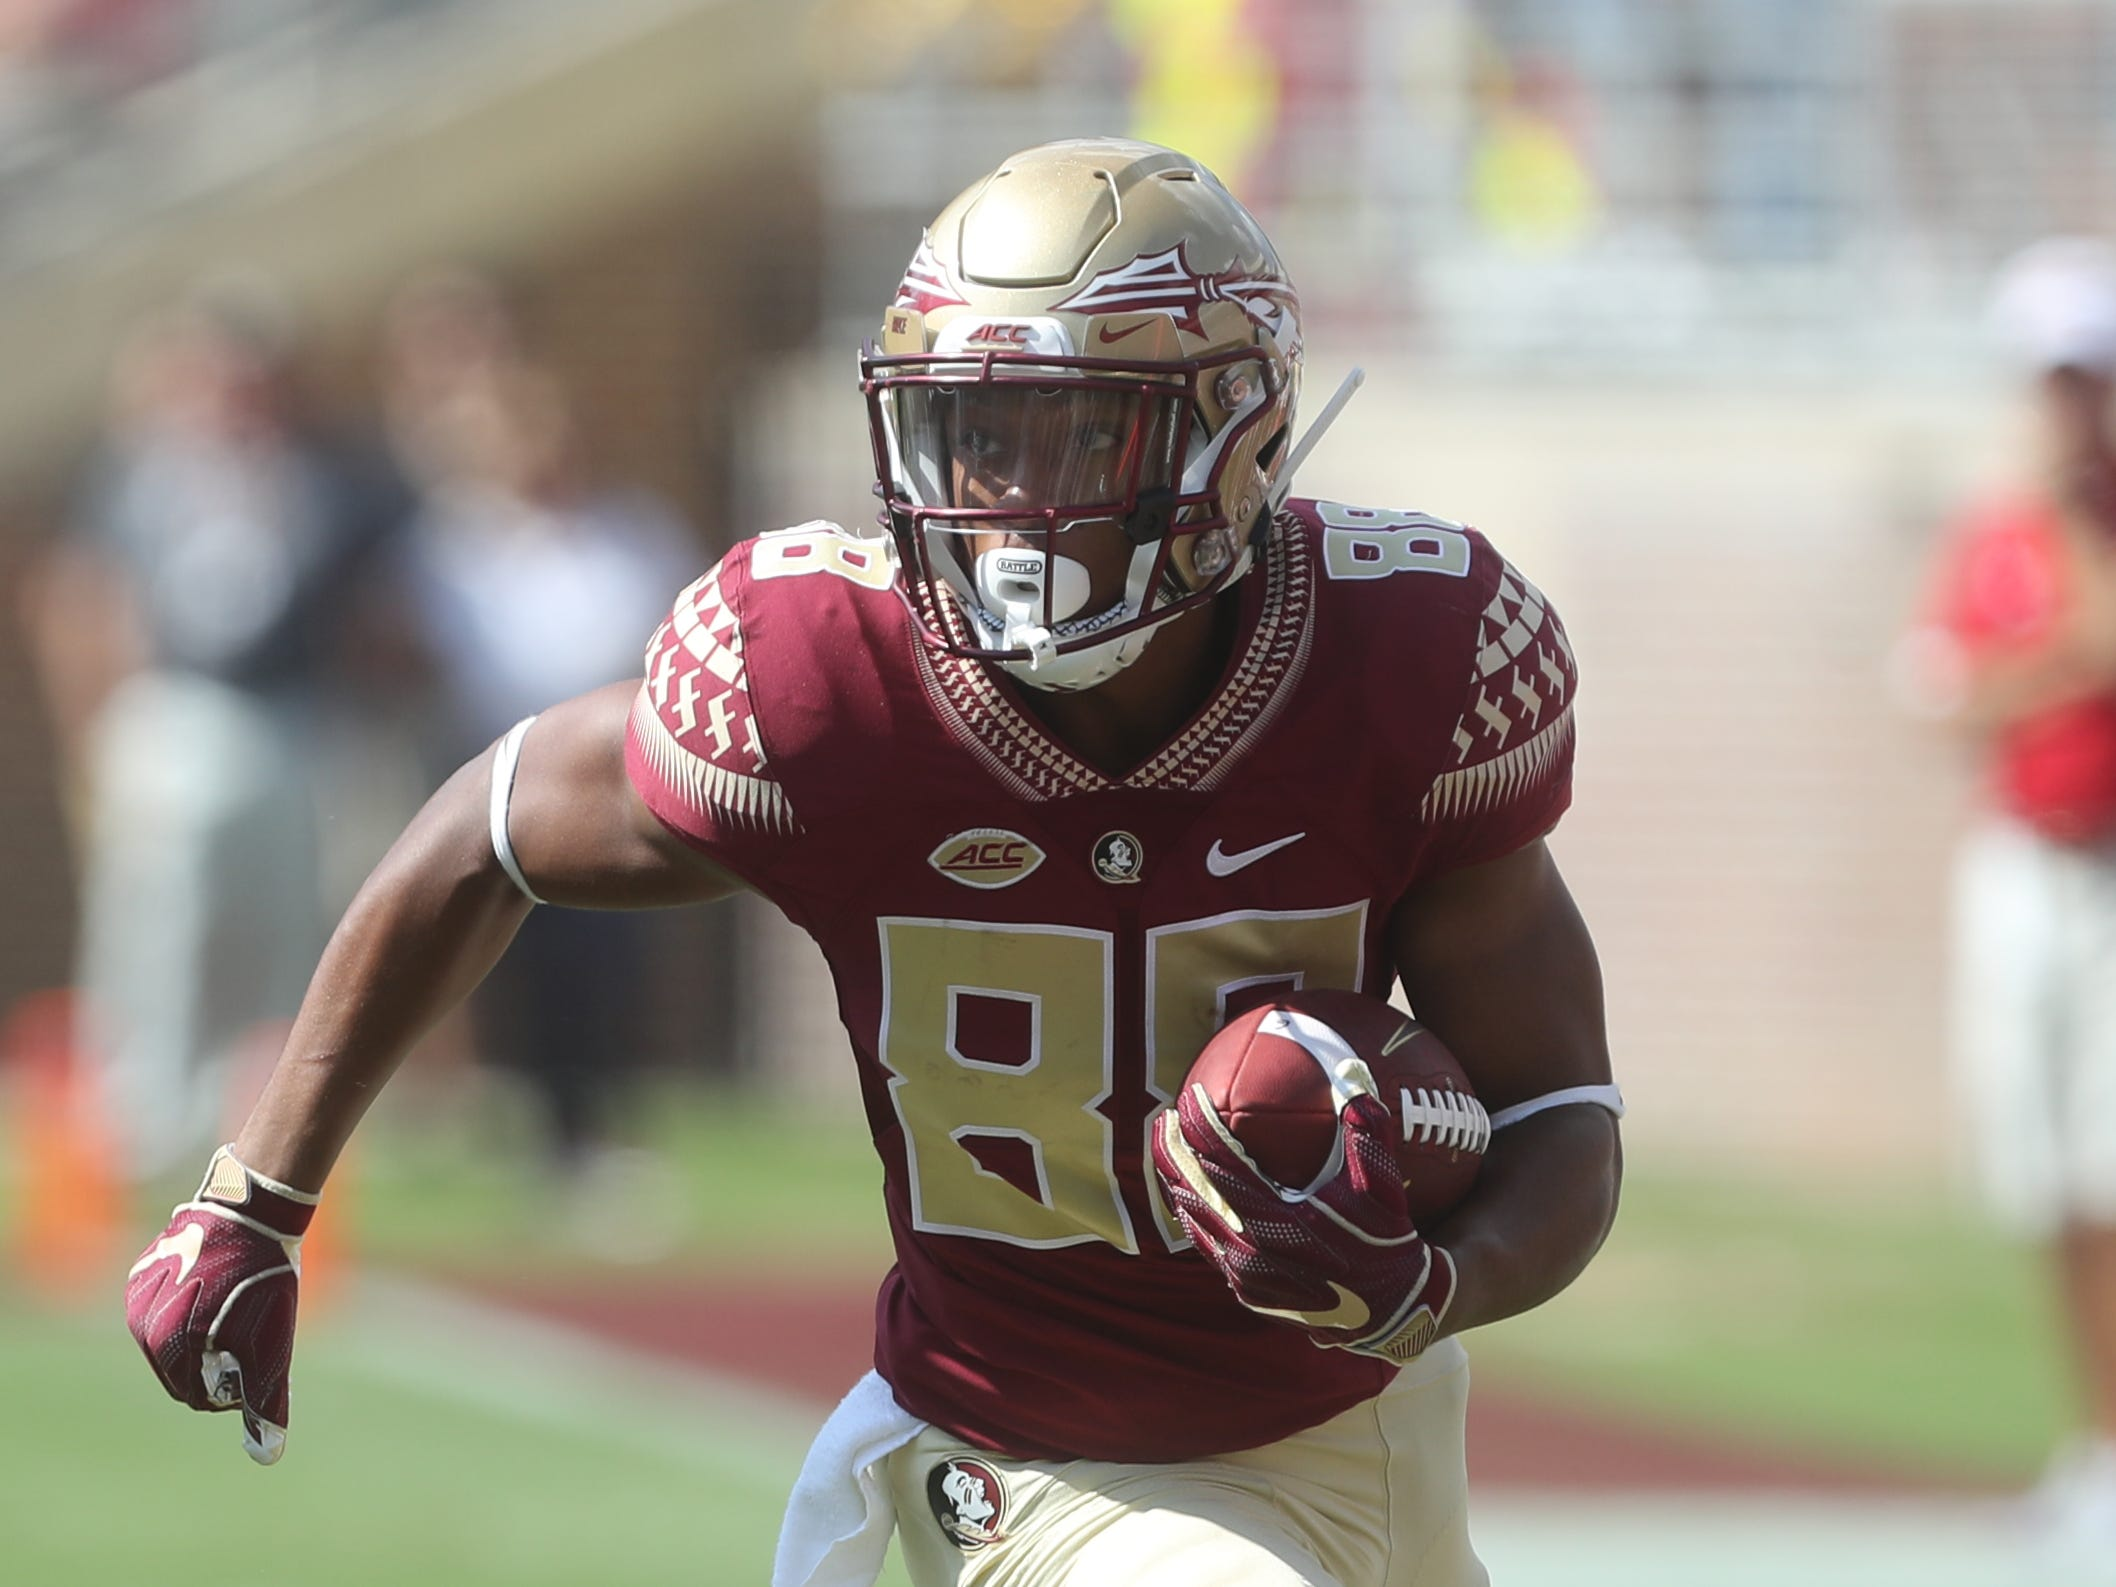 Florida State Seminoles wide receiver Nyqwan Murray (8) runs the ball during a game between the Florida State University Seminoles and the Northern Illinois University Huskies at Doak S. Campbell Stadium in Tallahassee, Fla. Saturday, September 22, 2018.